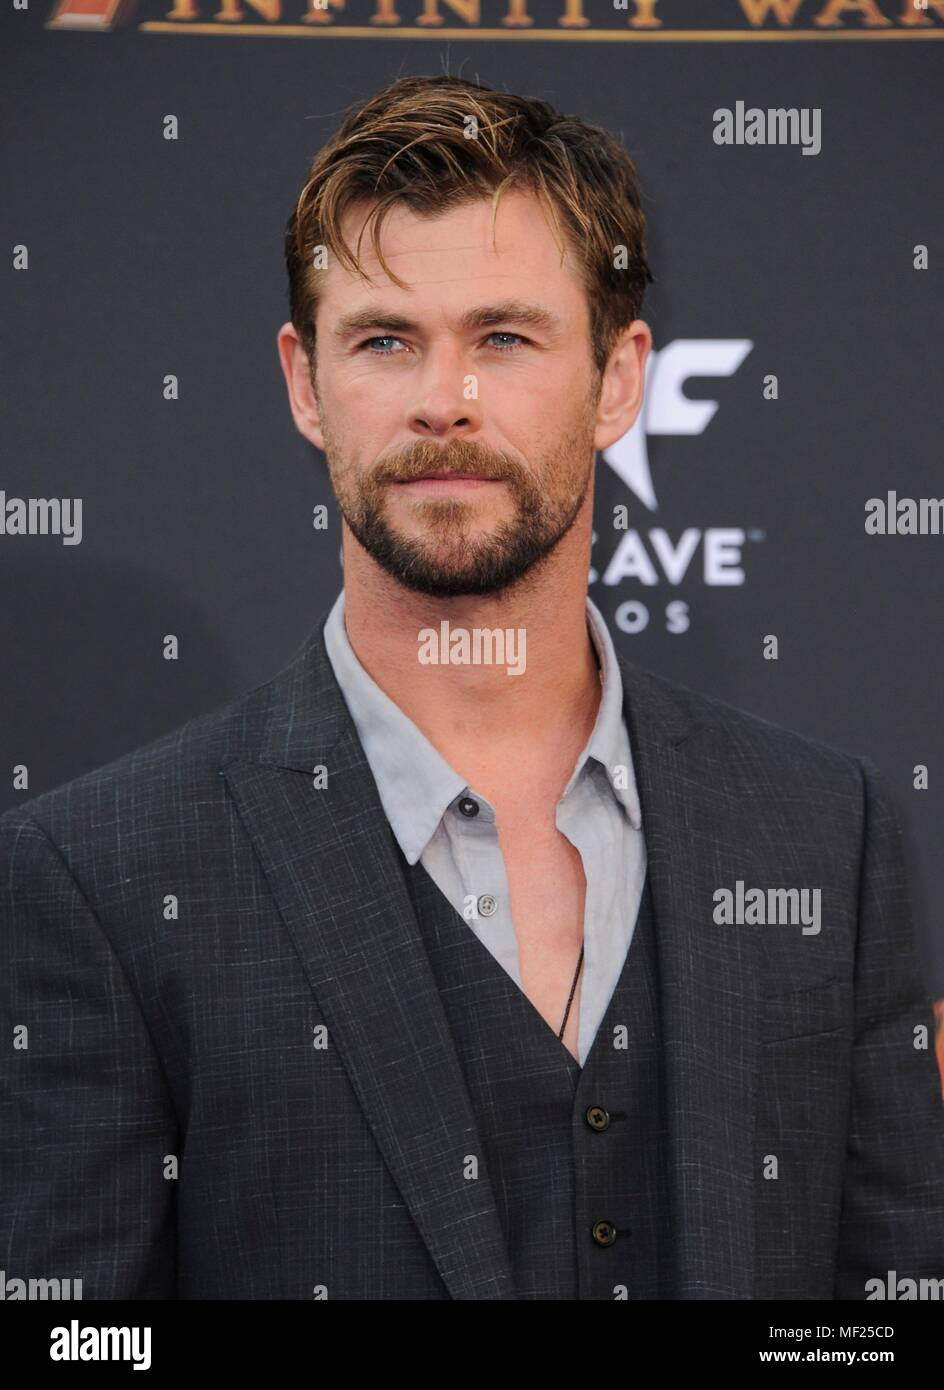 Chris Hemsworth at arrivals for AVENGERS: INFINITY WAR Premiere - Part 2, Hollywood, Los Angeles, CA April 23, 2018. Photo By: Elizabeth Goodenough/Everett Collection Stock Photo